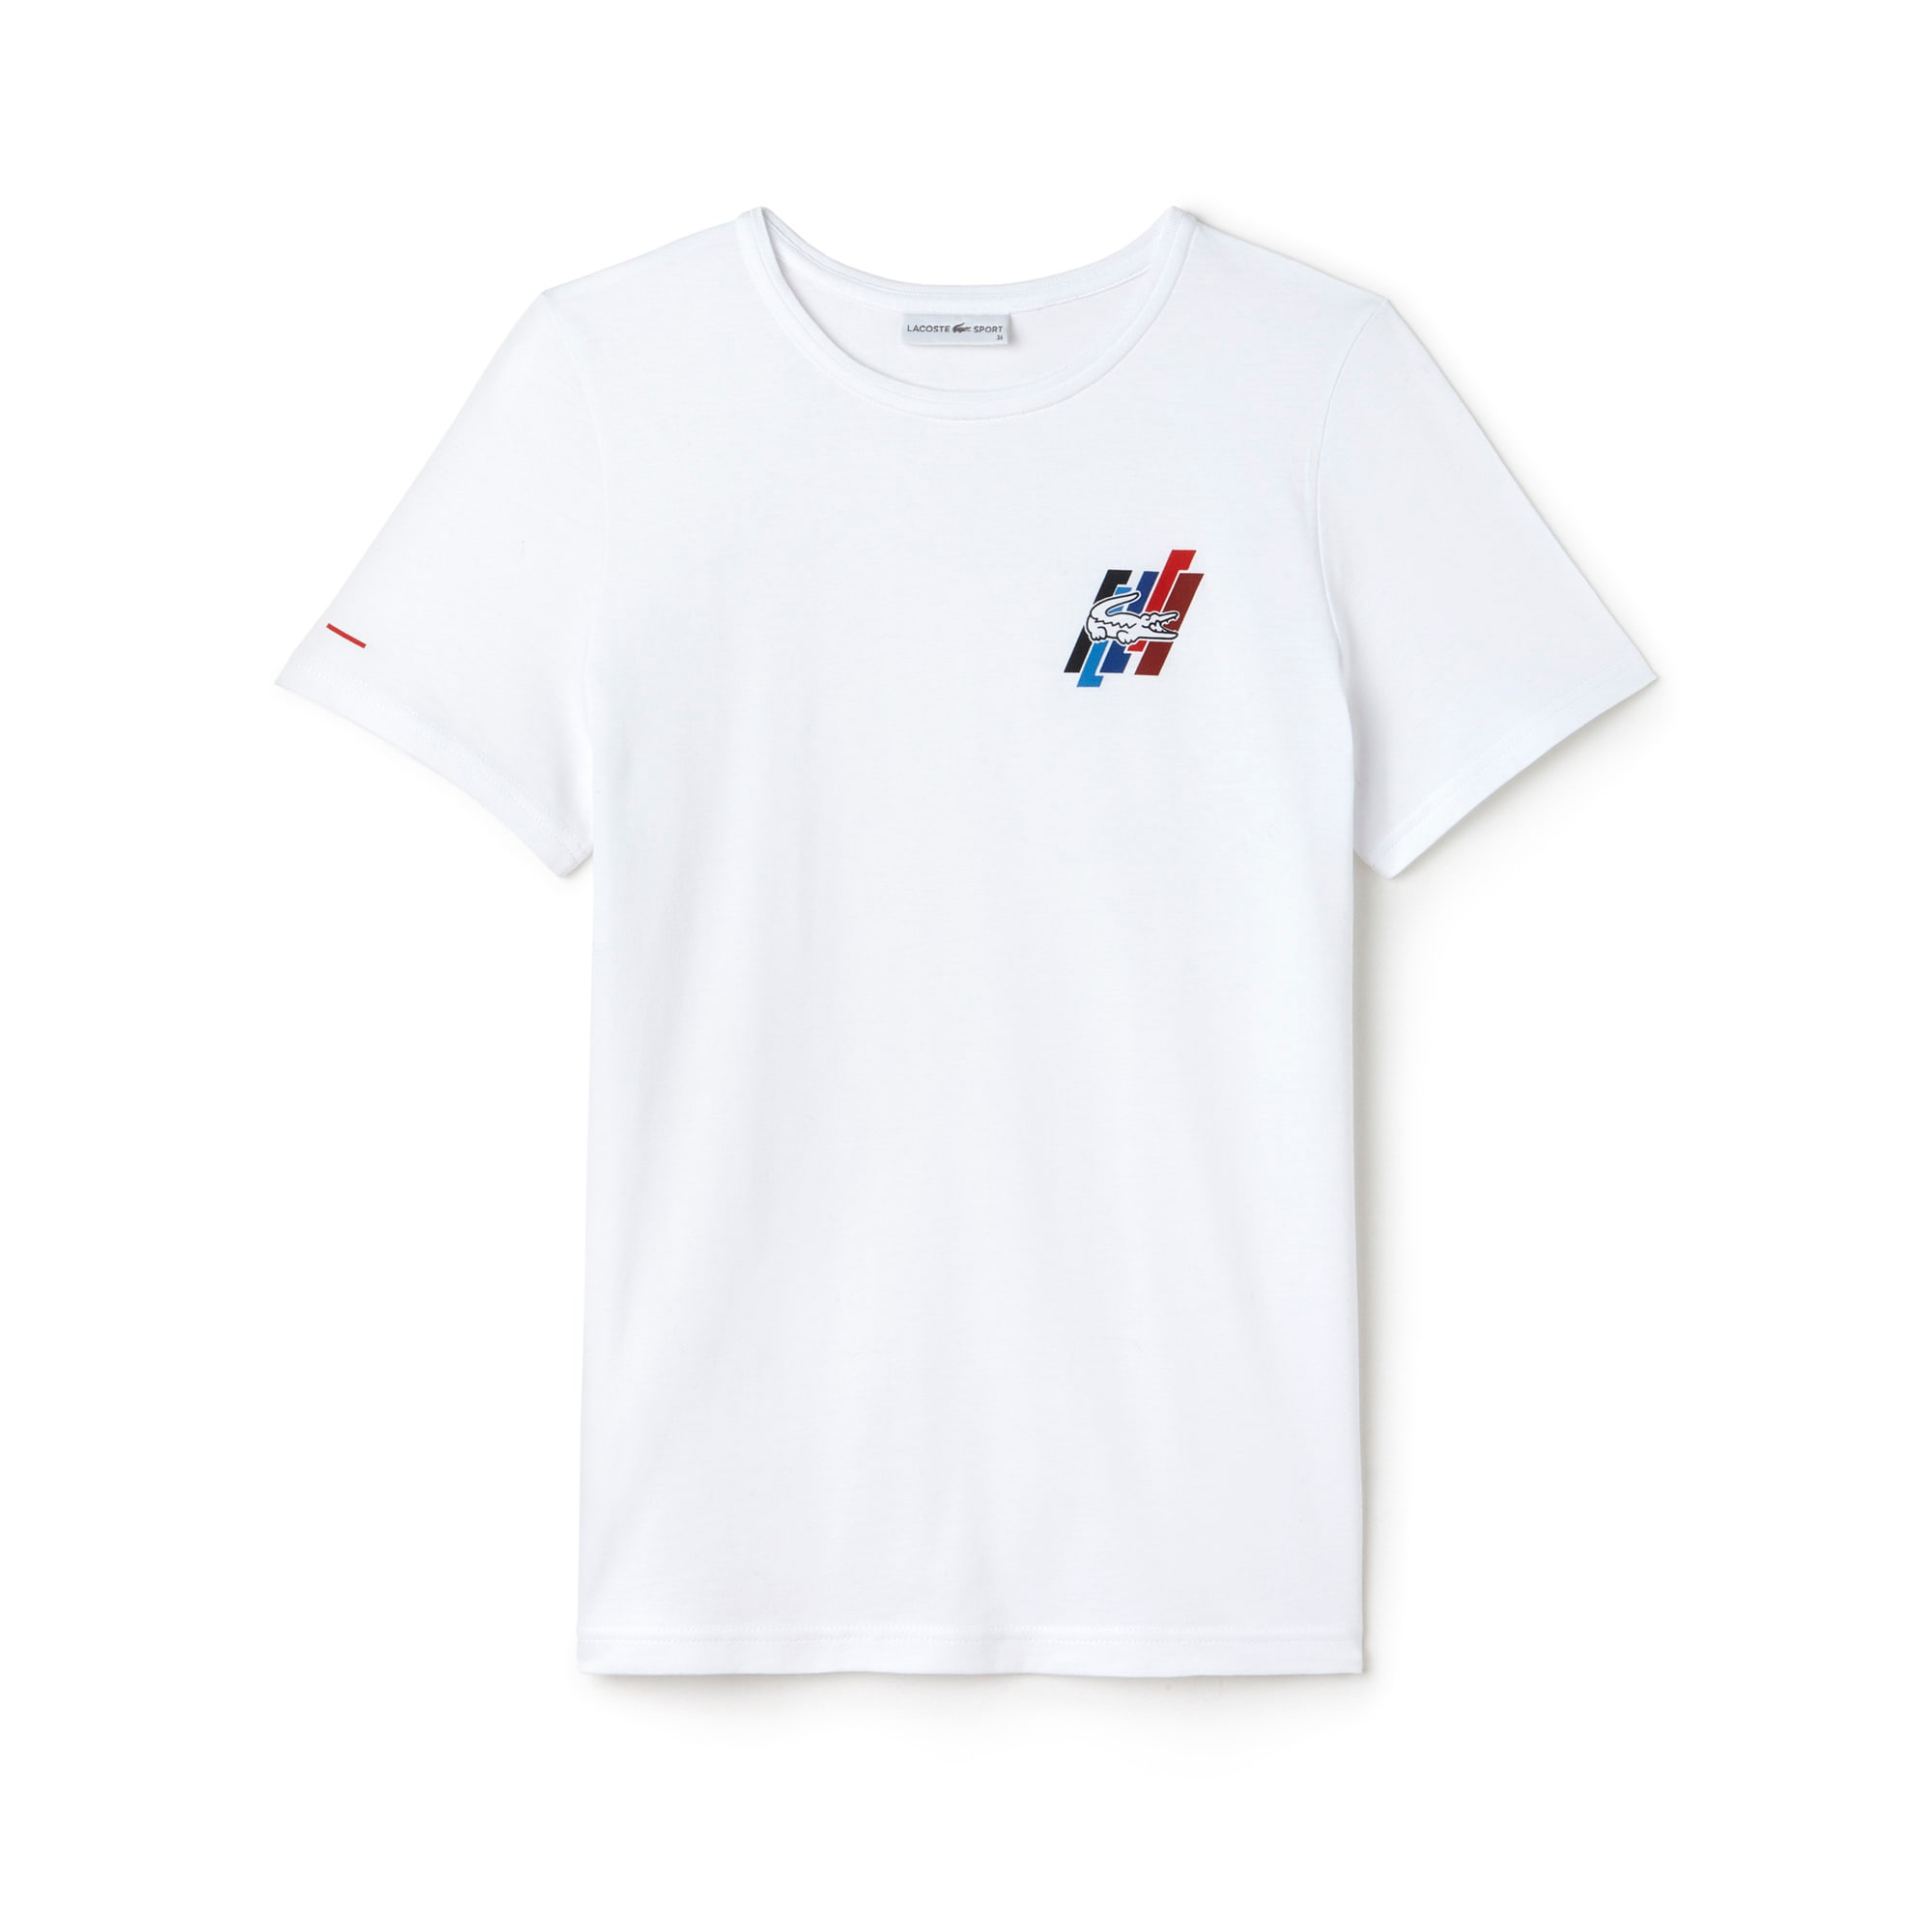 Women's Tricolor Collection Crew Neck Jersey T-shirt